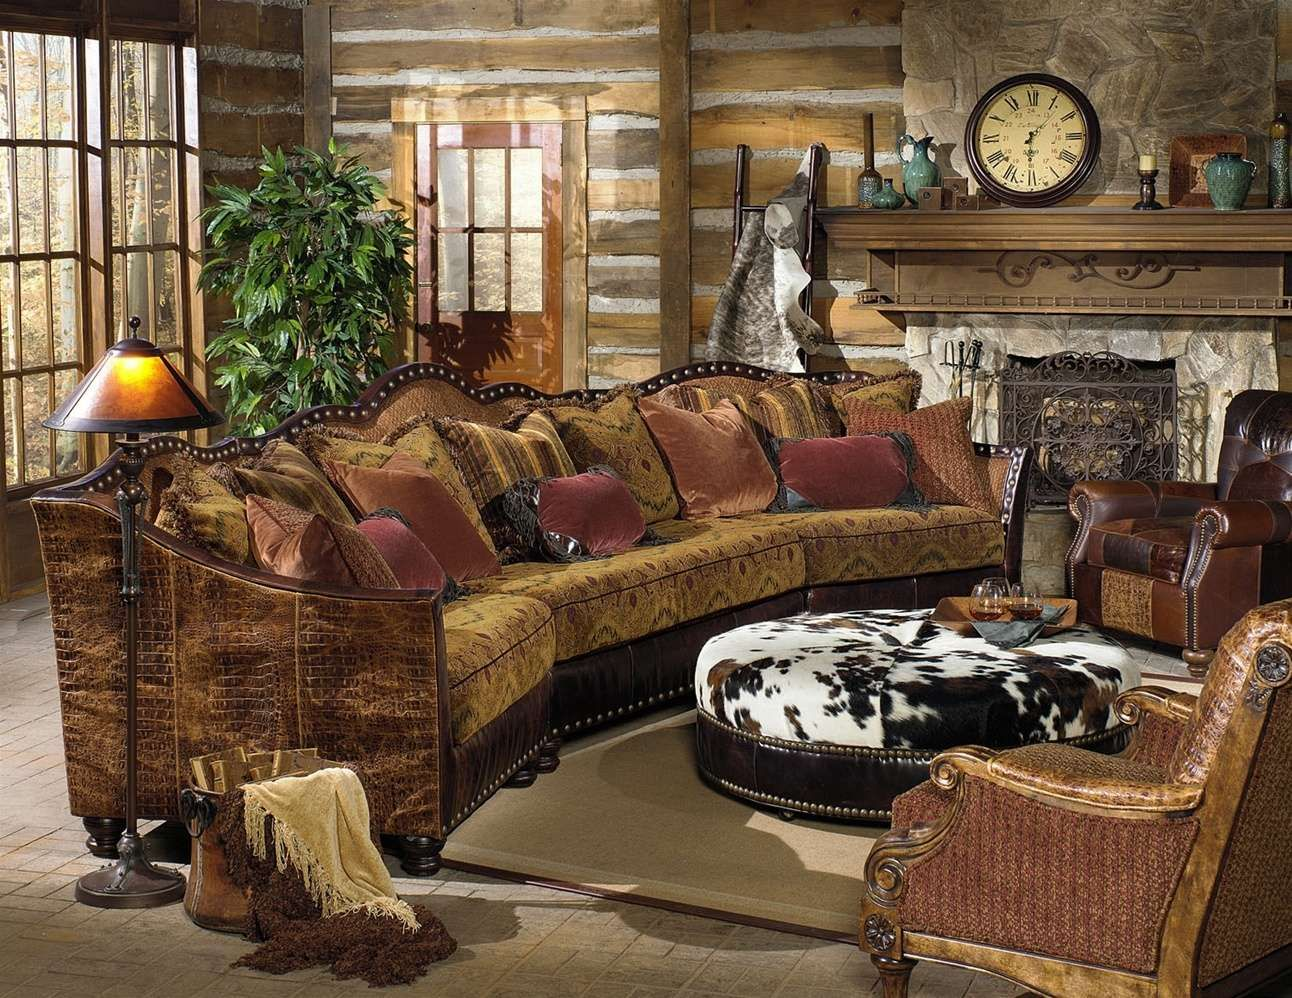 17 Best images about Living room decorating ideas on Pinterest